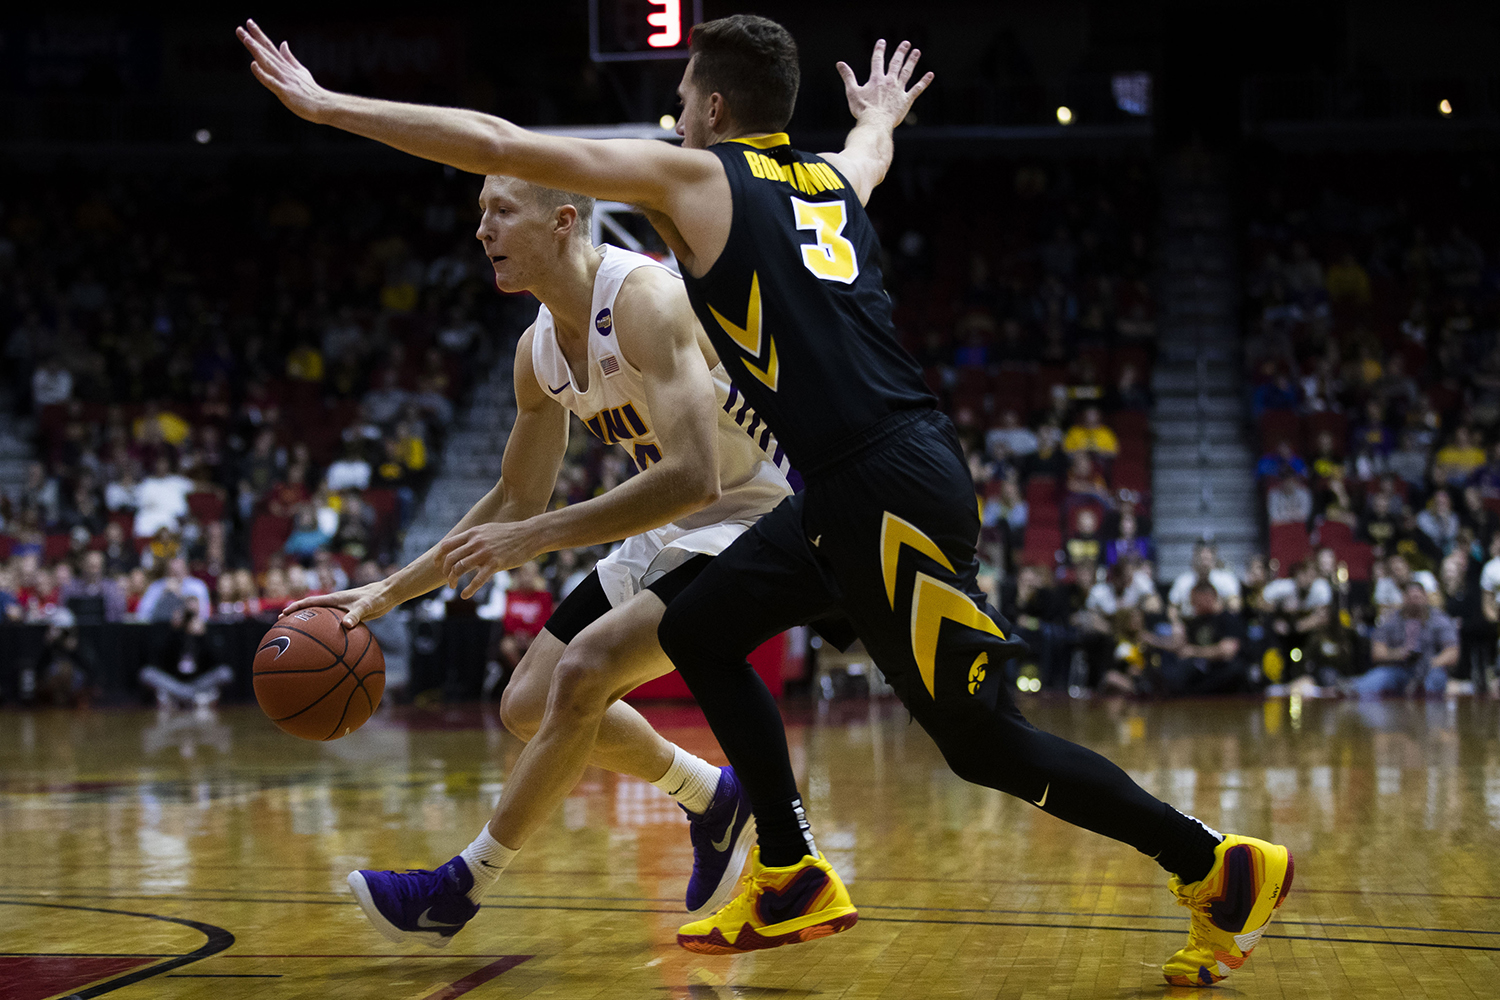 Iowa's Jordan Bohannon guards UNI's A.J. Green during the Iowa/UNI men's basketball game at Wells Fargo Arena in Des Moines on Saturday, Dec. 15, 2018. The Hawkeyes defeated the Panthers, 77-54. (Lily Smith/The Daily Iowan)